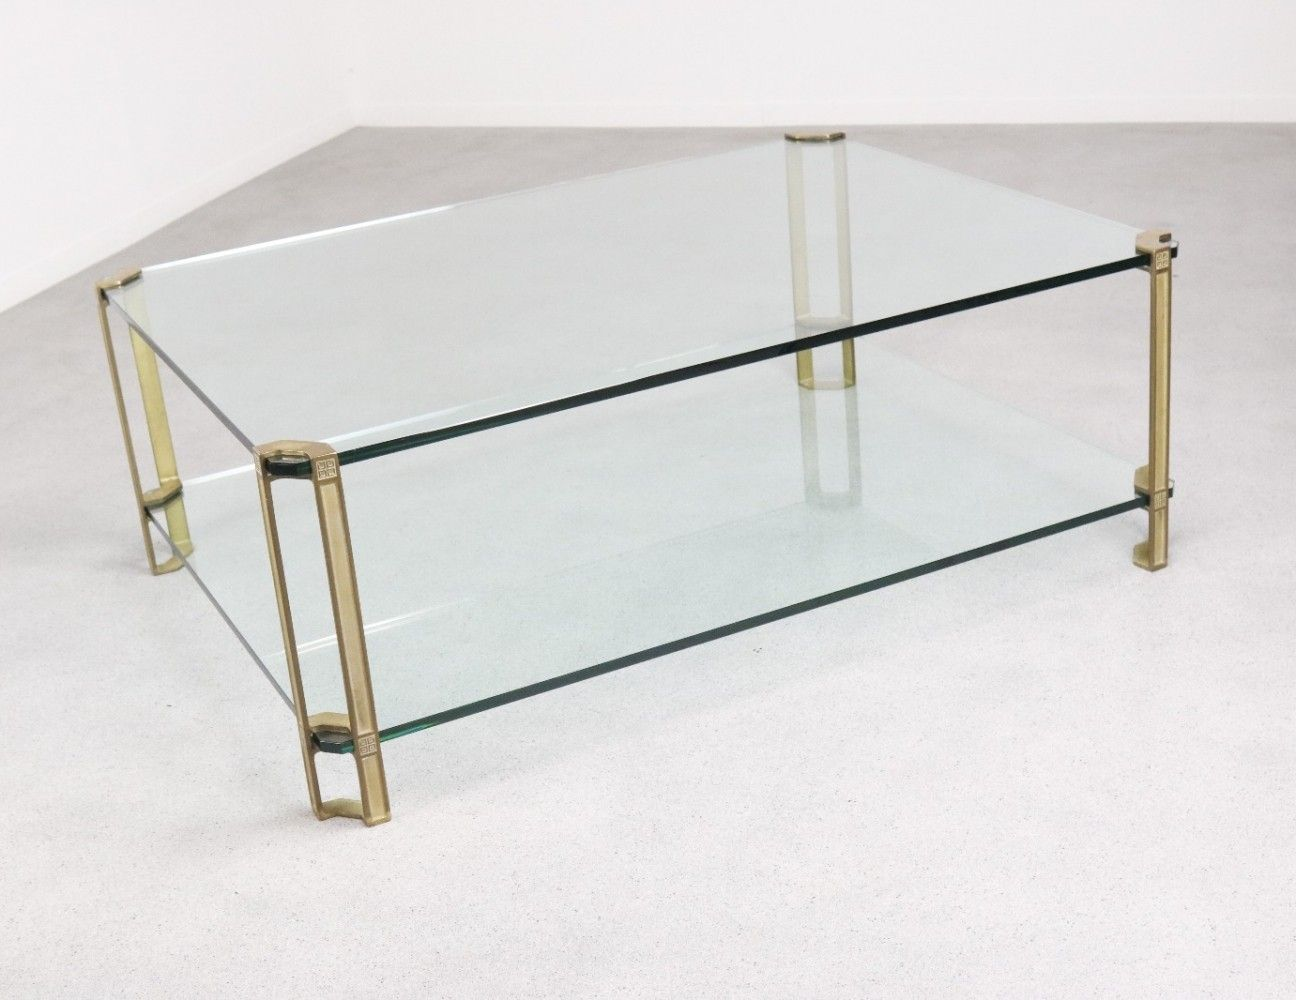 Ghyczy Salon Tafel.Coffee Table By Peter Ghyczy For Ghyczy 1970s Vintage